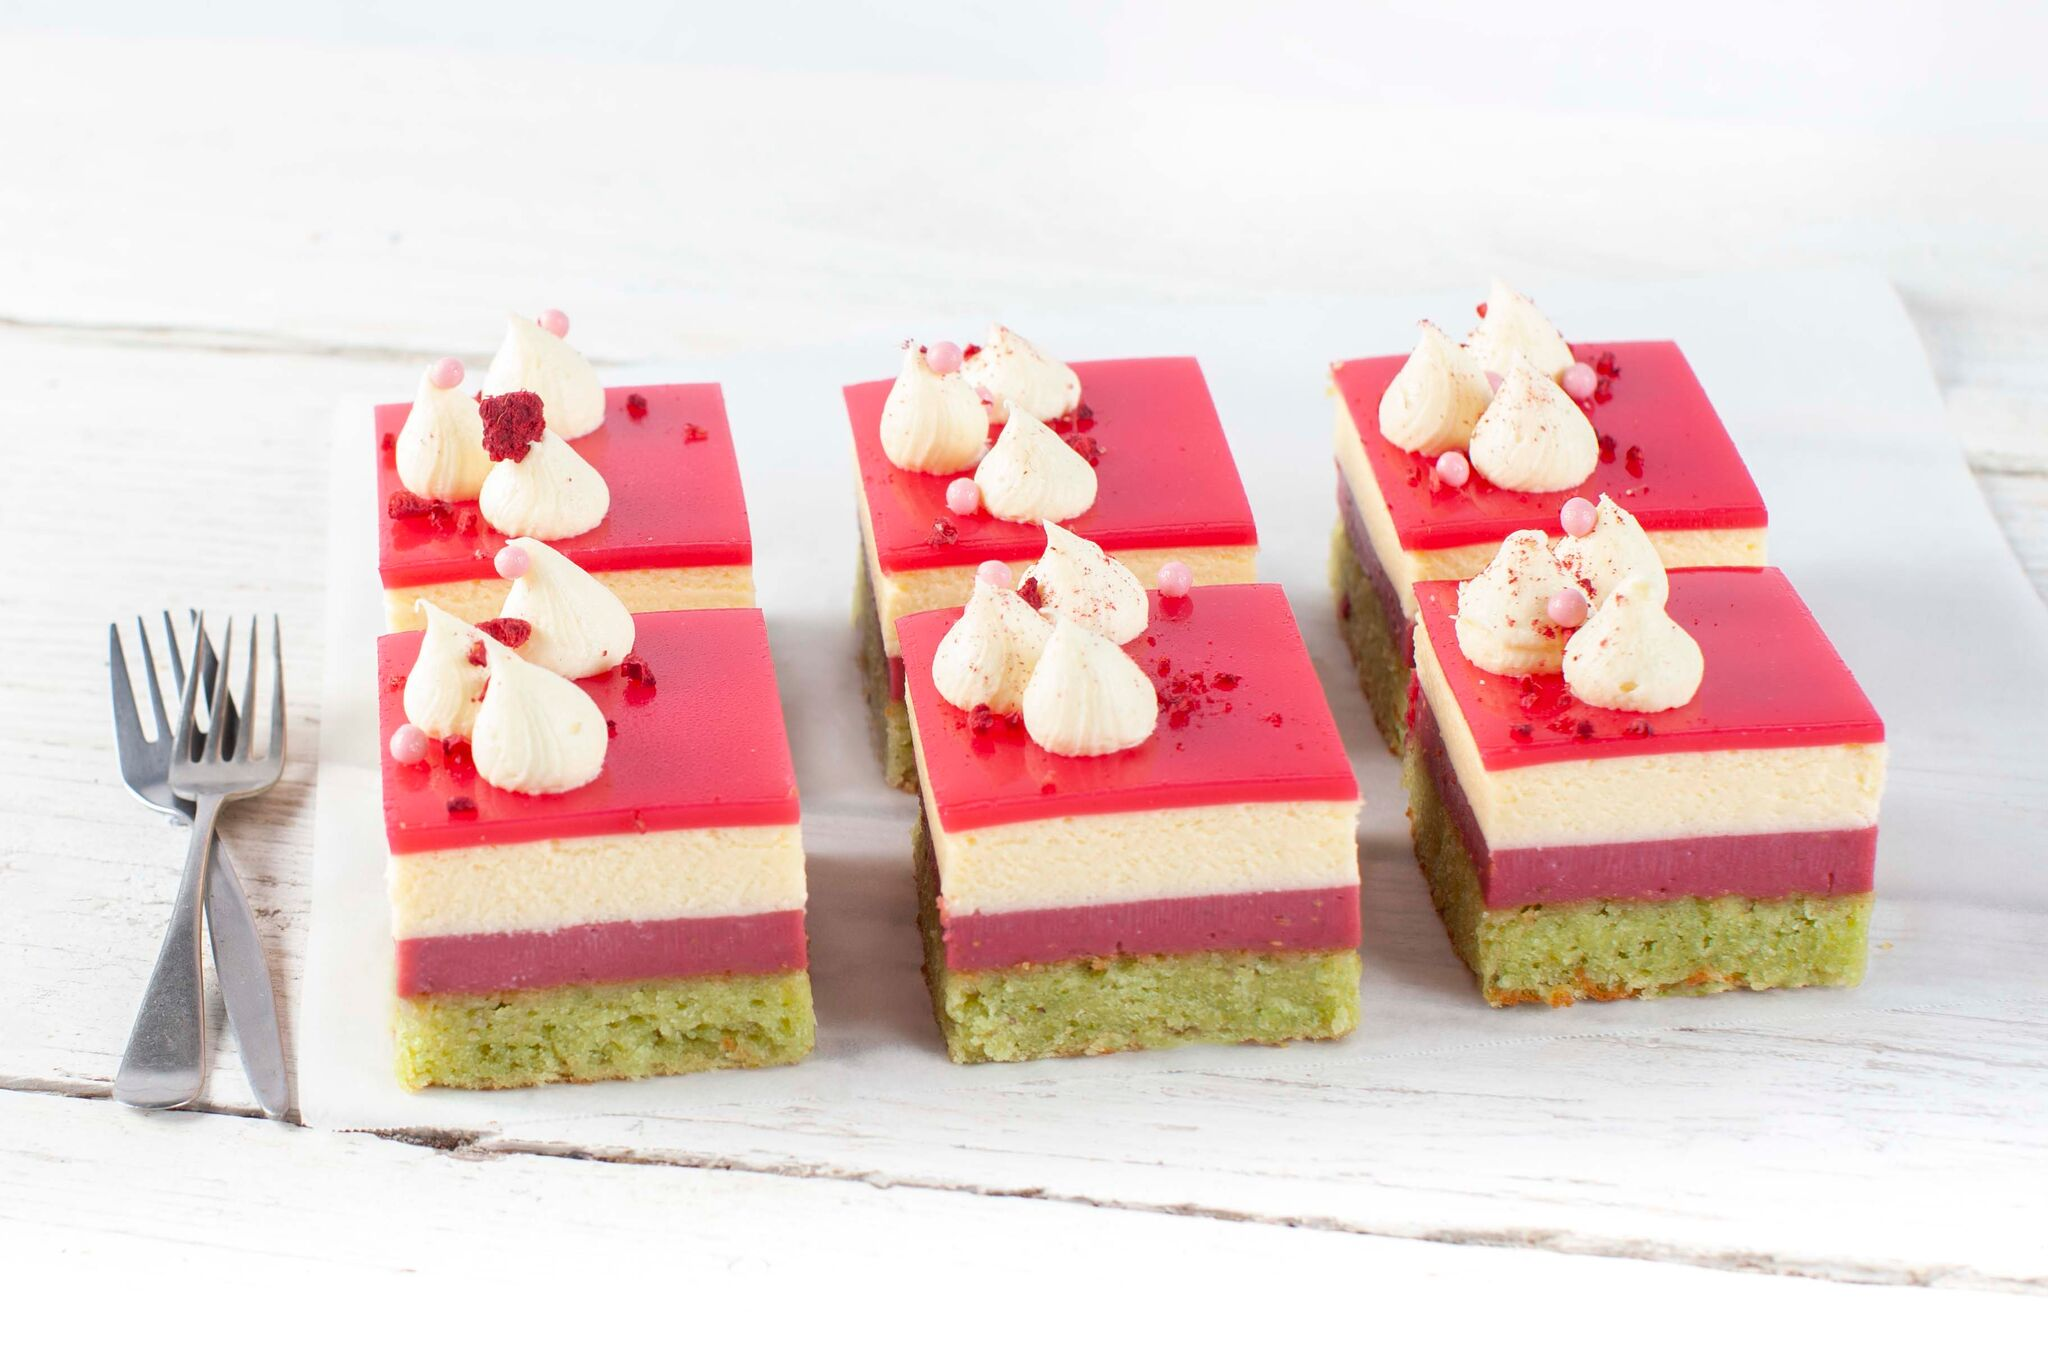 Raspberry Passionfruit Delice - Desserts Delivered